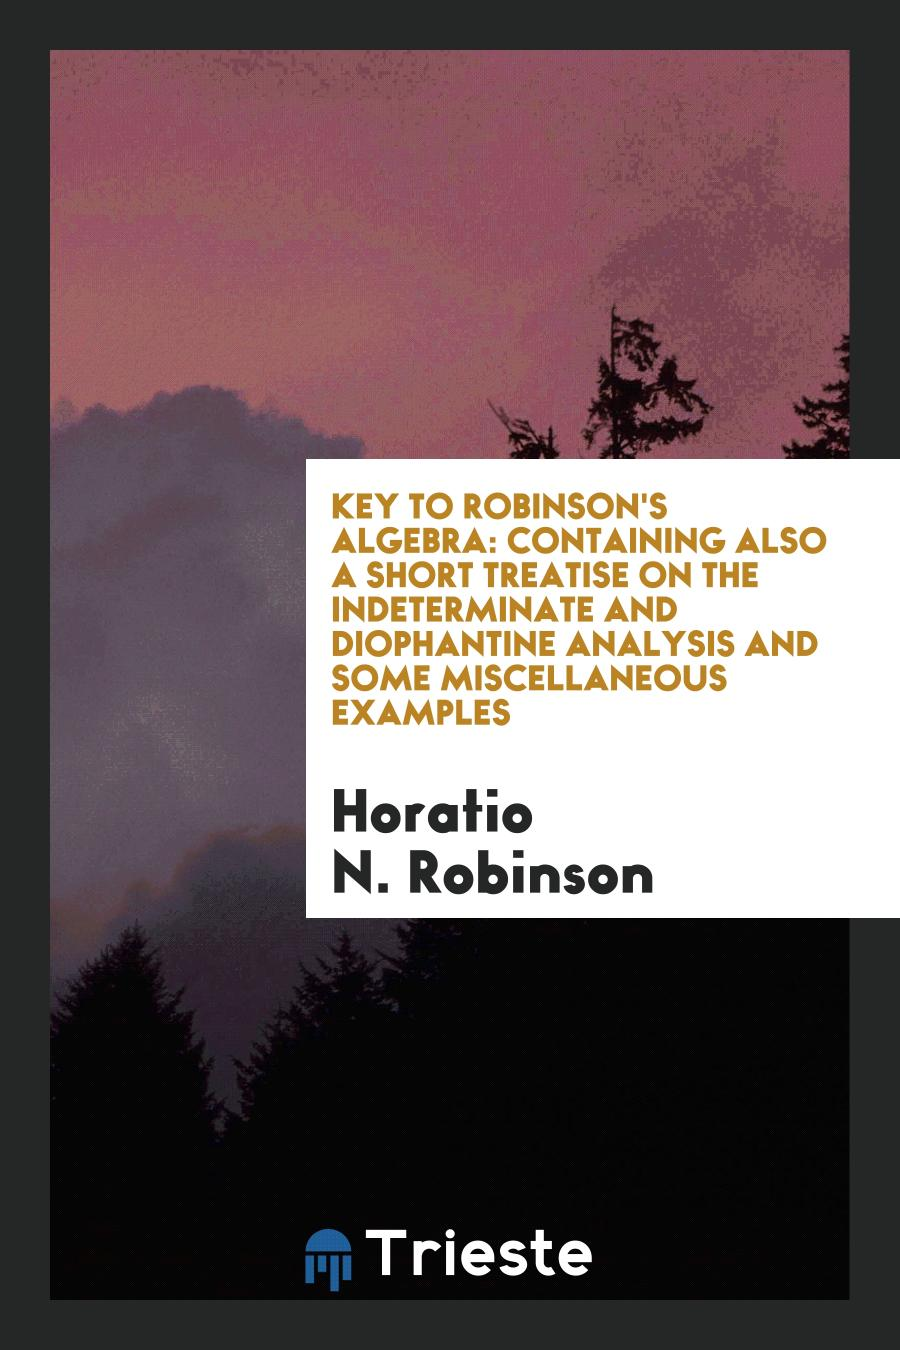 Key to Robinson's Algebra: Containing Also a Short Treatise on the Indeterminate and Diophantine Analysis and Some Miscellaneous Examples